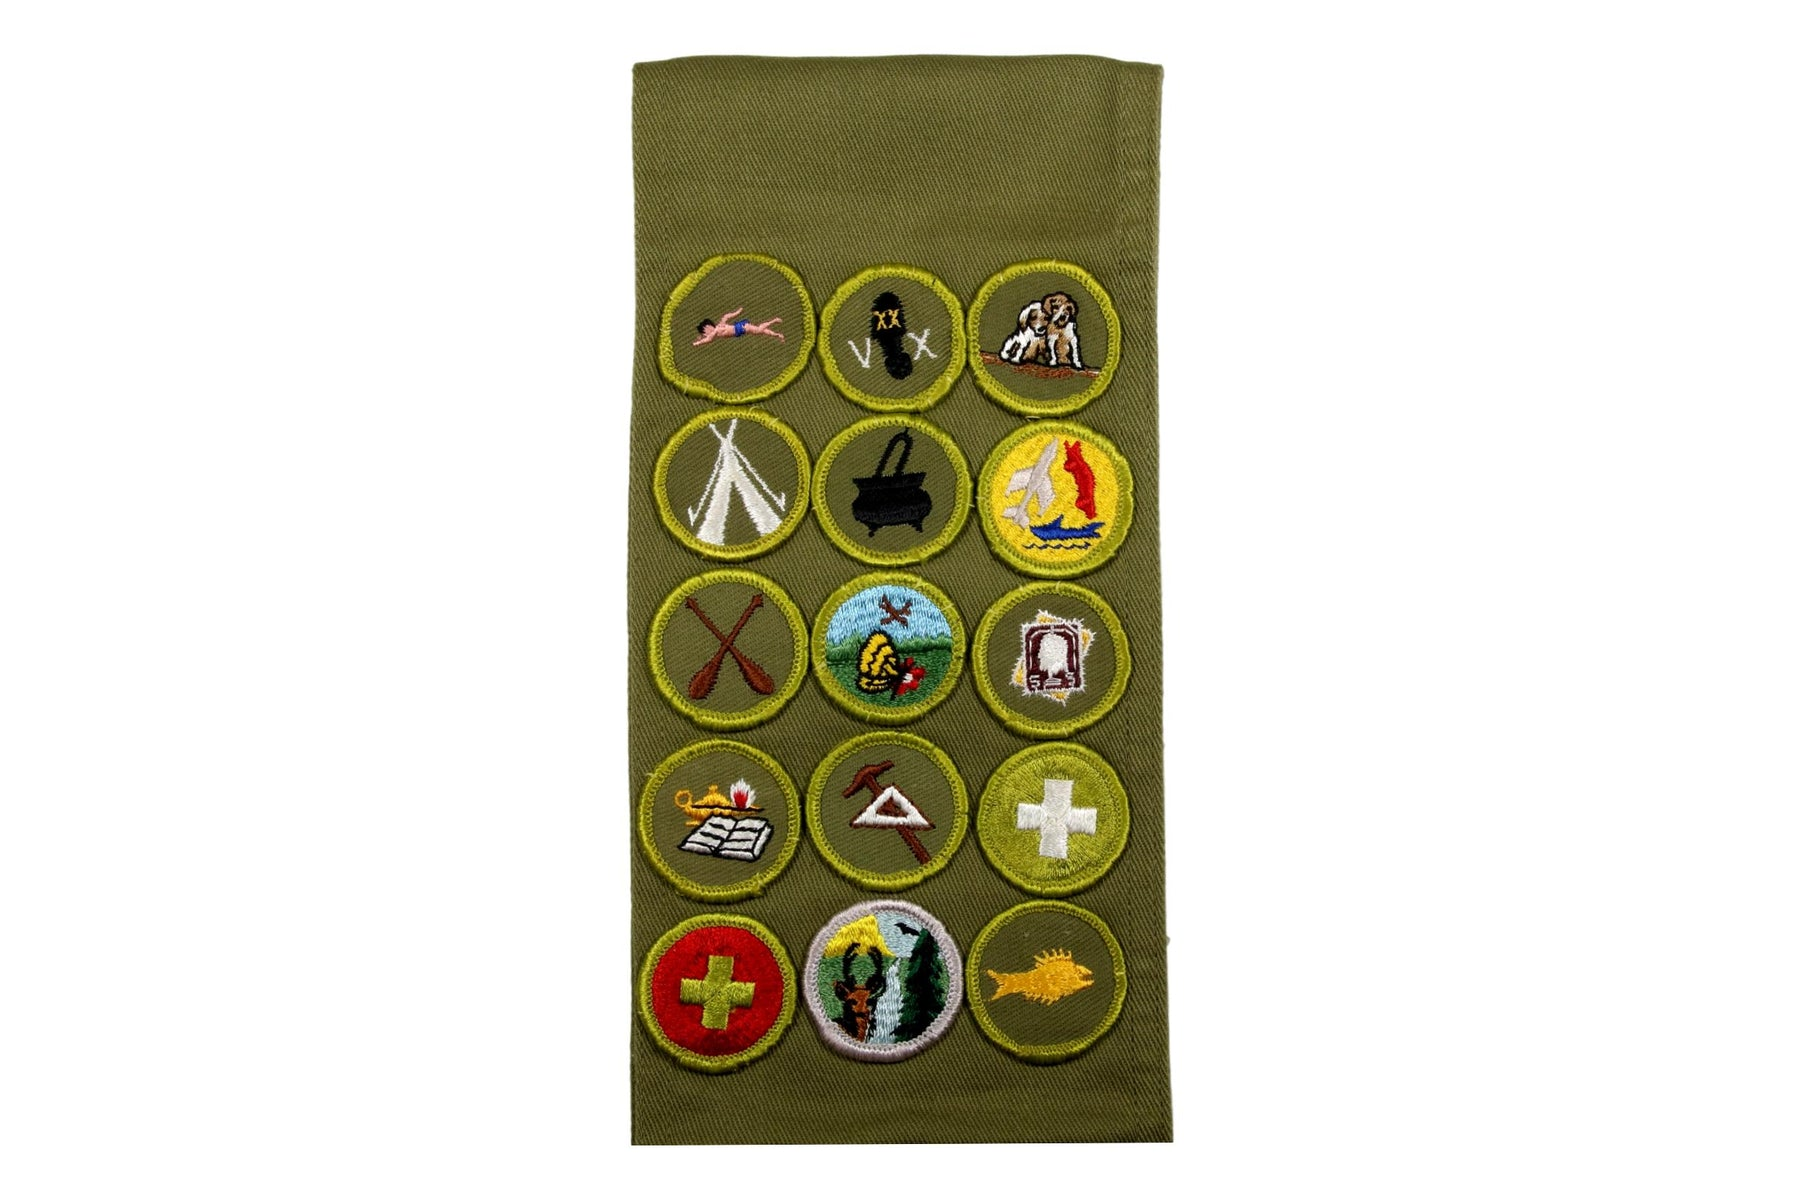 Merit Badge Sash 1960s 10 Rolled Edge Twil and 5 Cloth Back Fully Embroidered Merit Badges on 1960s Khaki